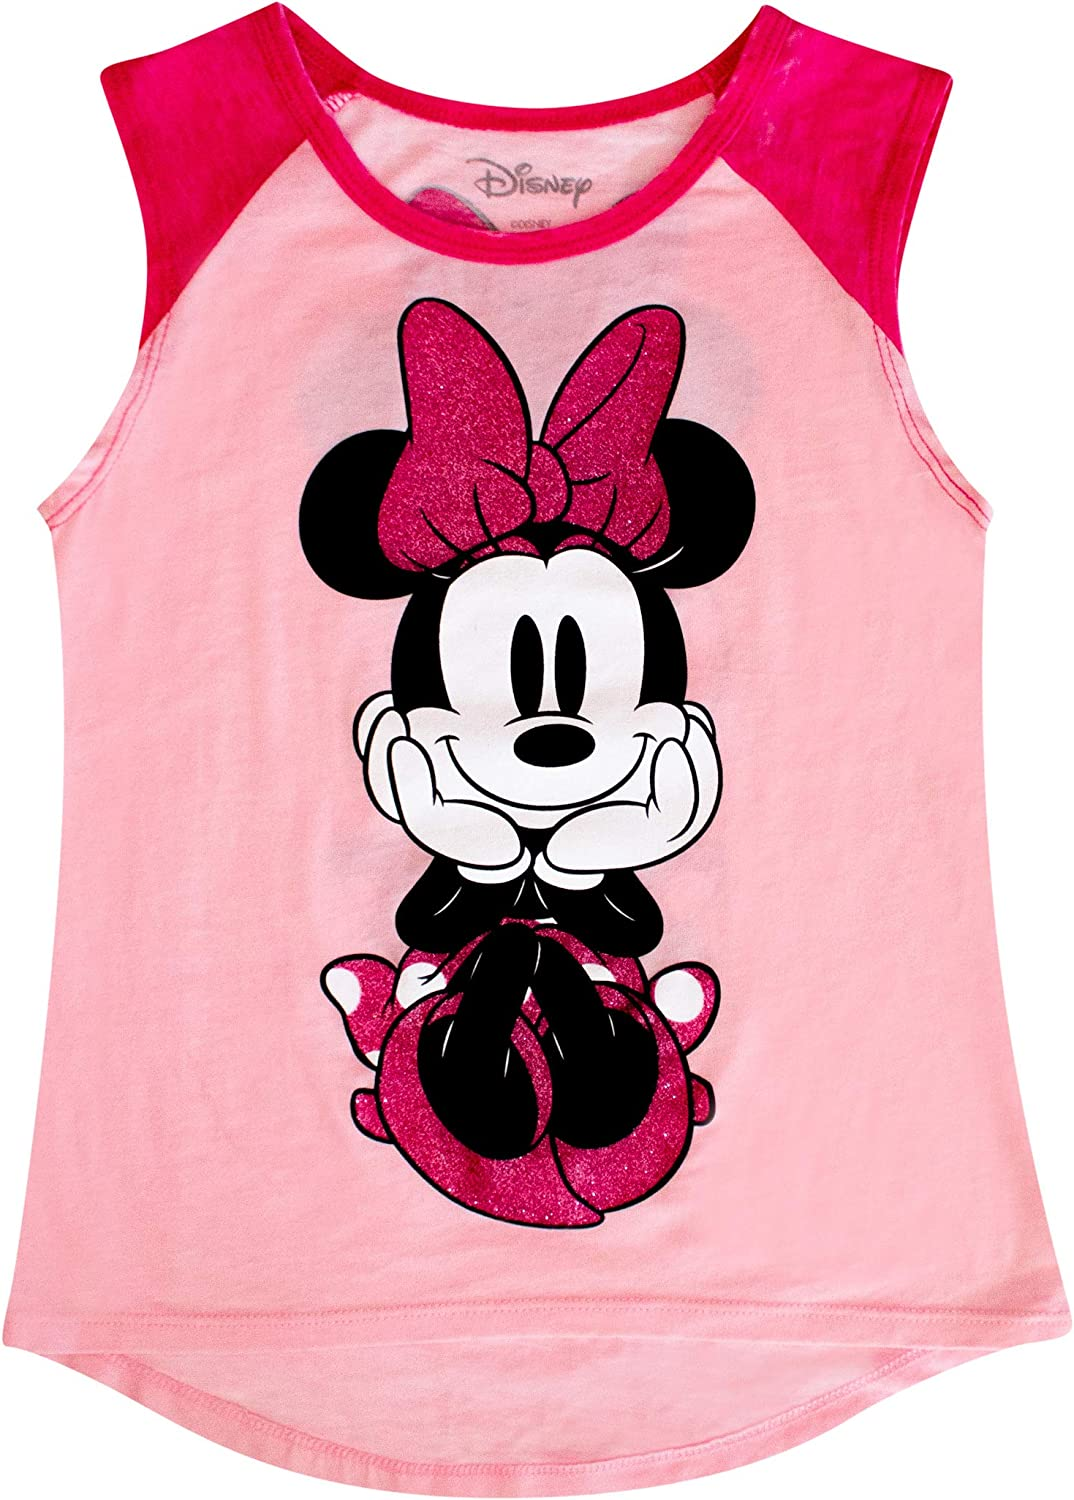 Disney Minnie Mouse Shirt Youth Front Girl's Pastel Cash special price Pink Bombing new work Raglan